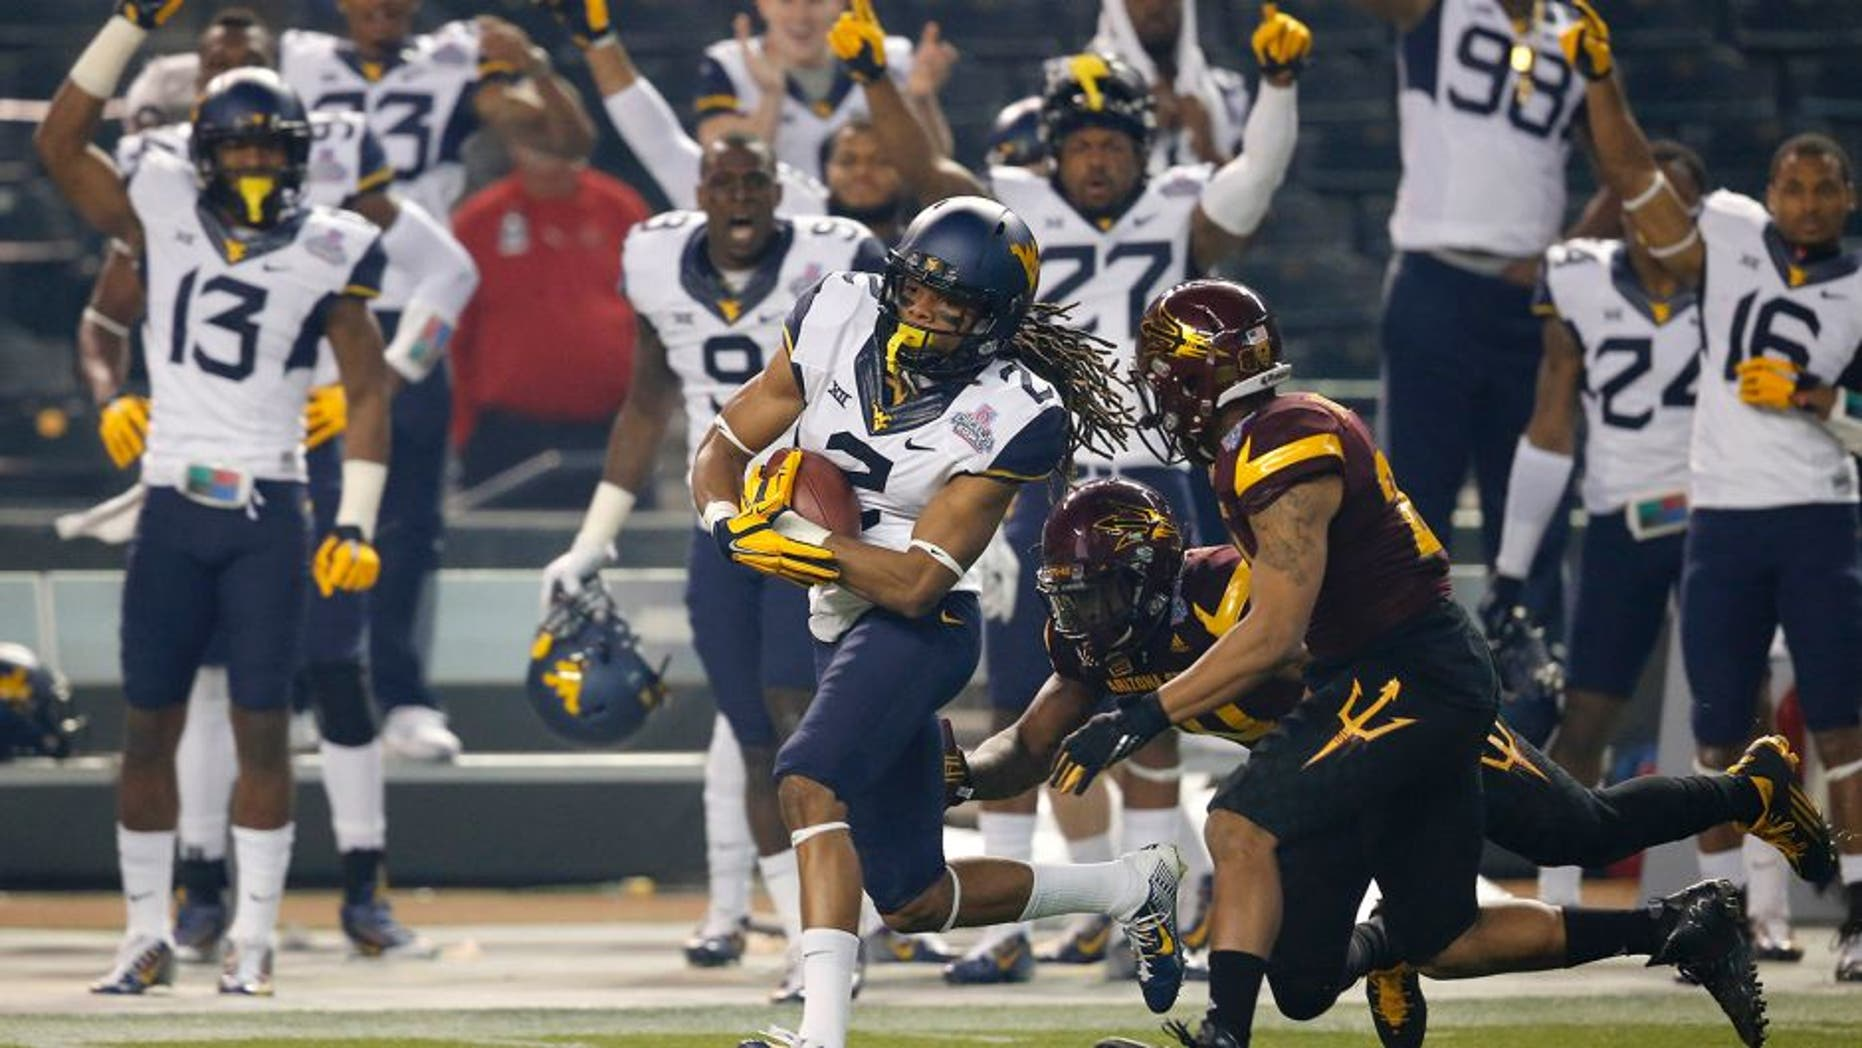 West Virginia wide receiver Ka'Raun White (2) pulls in a pass as Arizona State defensive back Kweishi Brown (10) gives chase during the first half of the Cactus Bowl NCAA college football game, Saturday, Jan. 2, 2016, in Phoenix. (AP Photo/Ross D. Franklin)